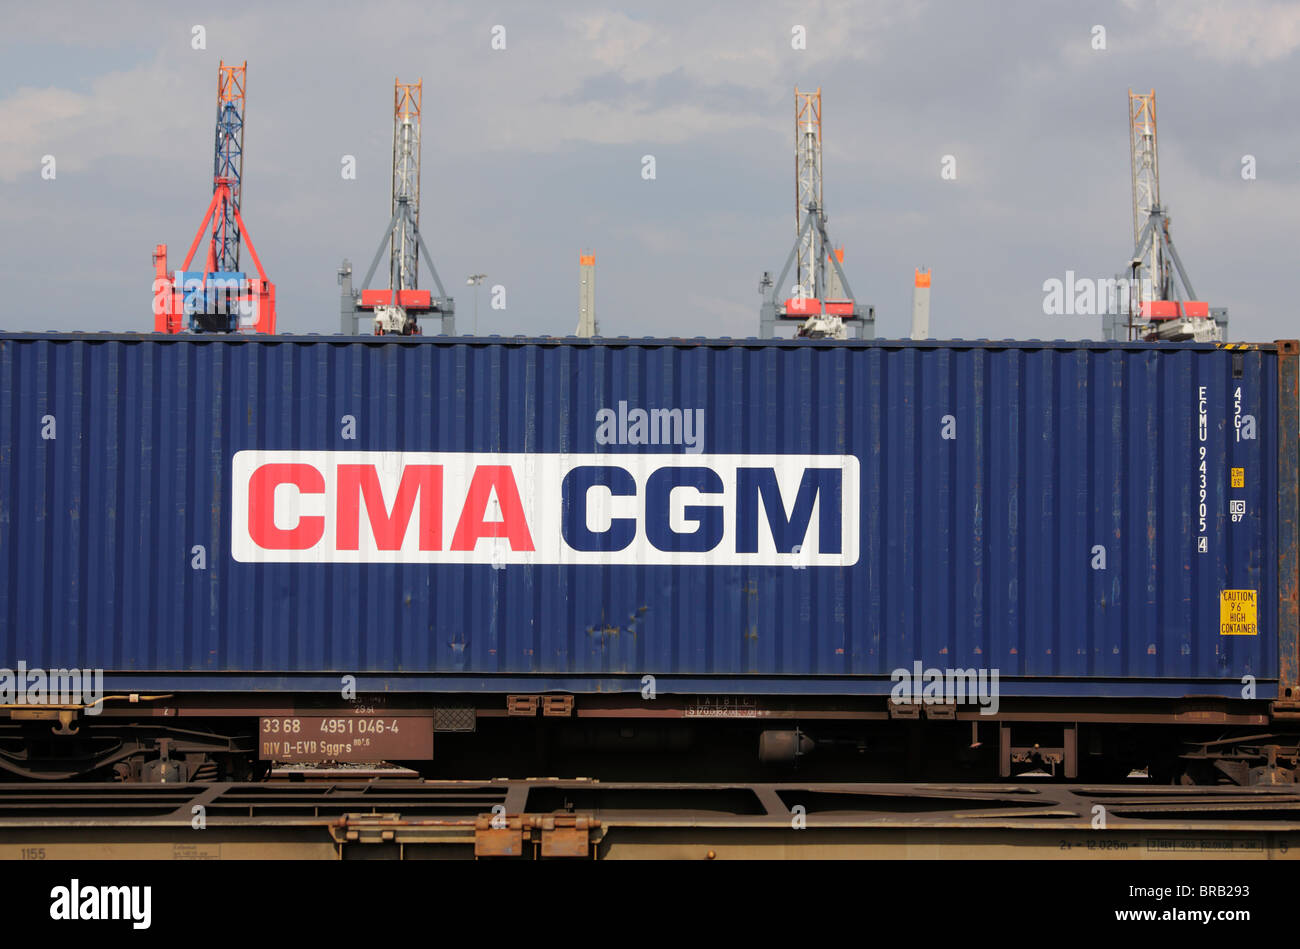 CMA CGM Container on a freight train at Burchardkai in Hamburg - Stock Image